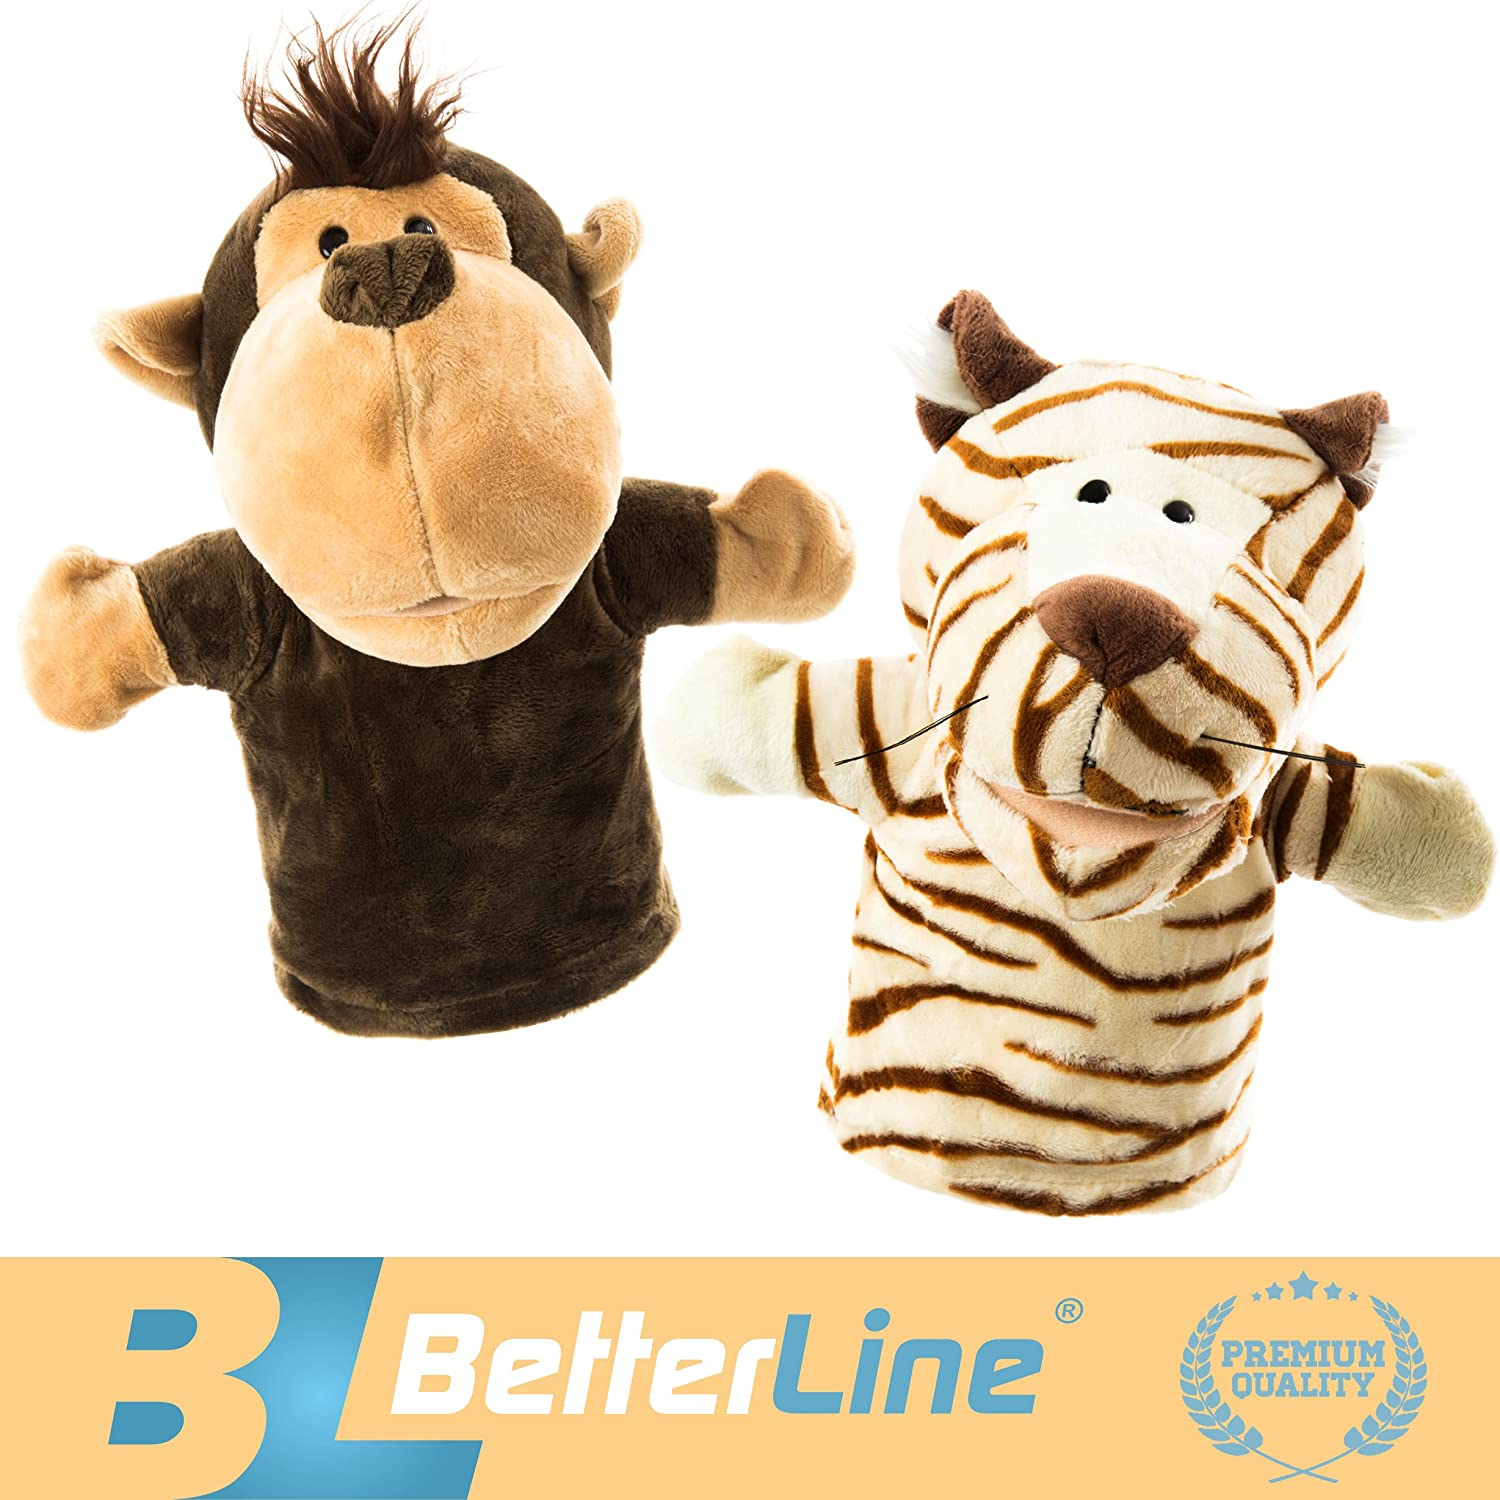 BETTERLINE Animal Hand Puppets Set of 2 Premium Quality, 9.5 Inches Soft Plush Hand Puppet for Kids- Perfect for Storytelling, Teaching, Preschool, Role-Play Toy Puppets (Monkey and Tiger)